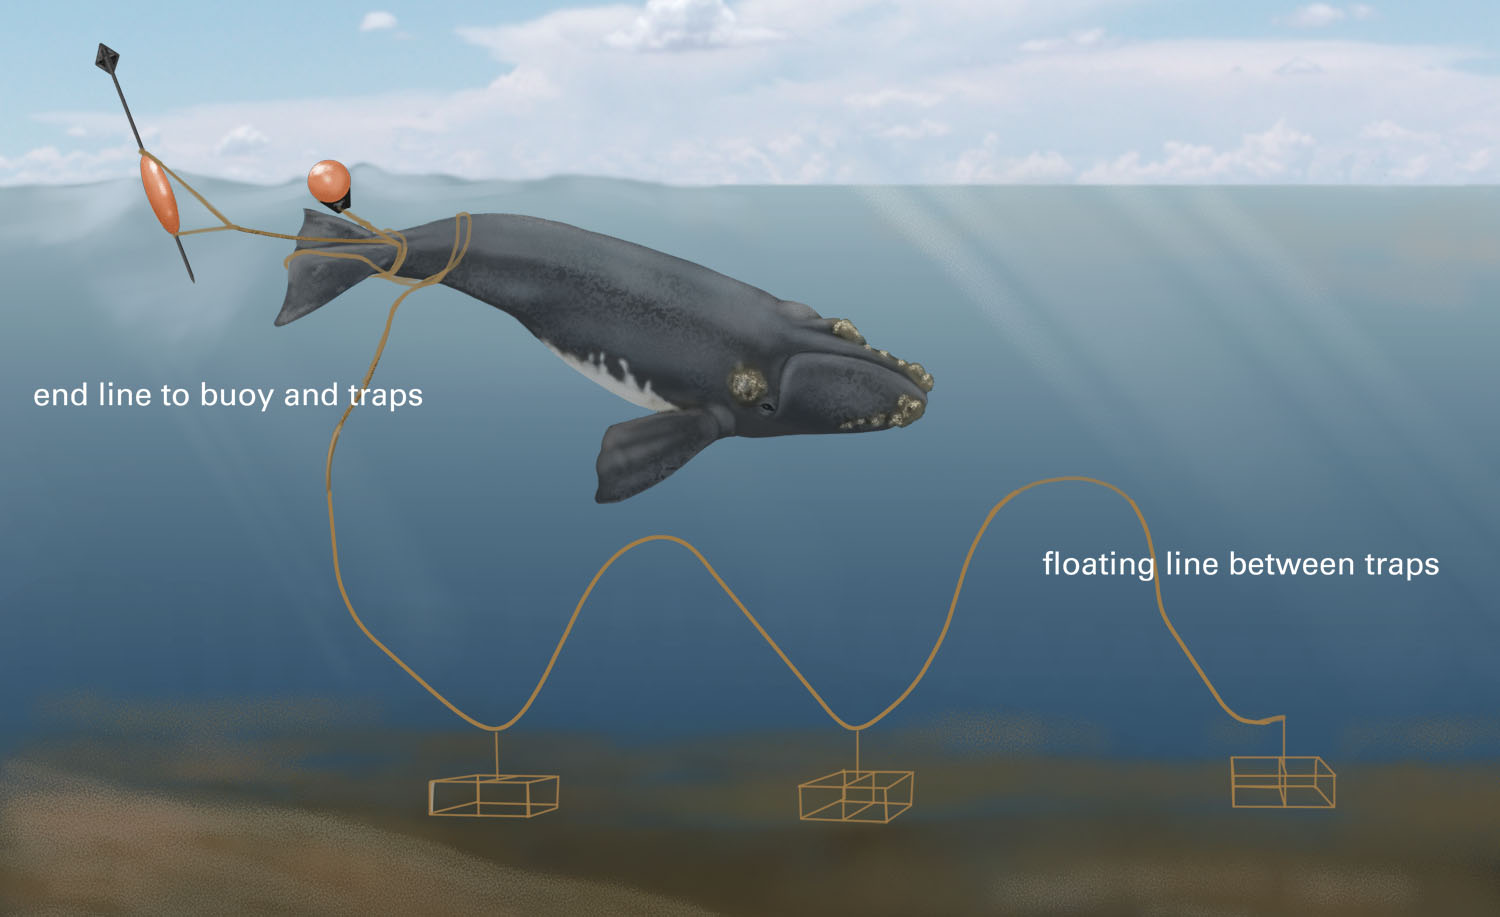 This illustration shows how fishing lines attached to traps and buoys on the ocean floor present a potentially deadly hazard to North Atlantic right whales.<div class='credit'><strong>Credit:</strong> This illustration shows how fishing lines attached to traps and buoys on the ocean floor present a potentially deadly hazard to North Atlantic right whales.</div>